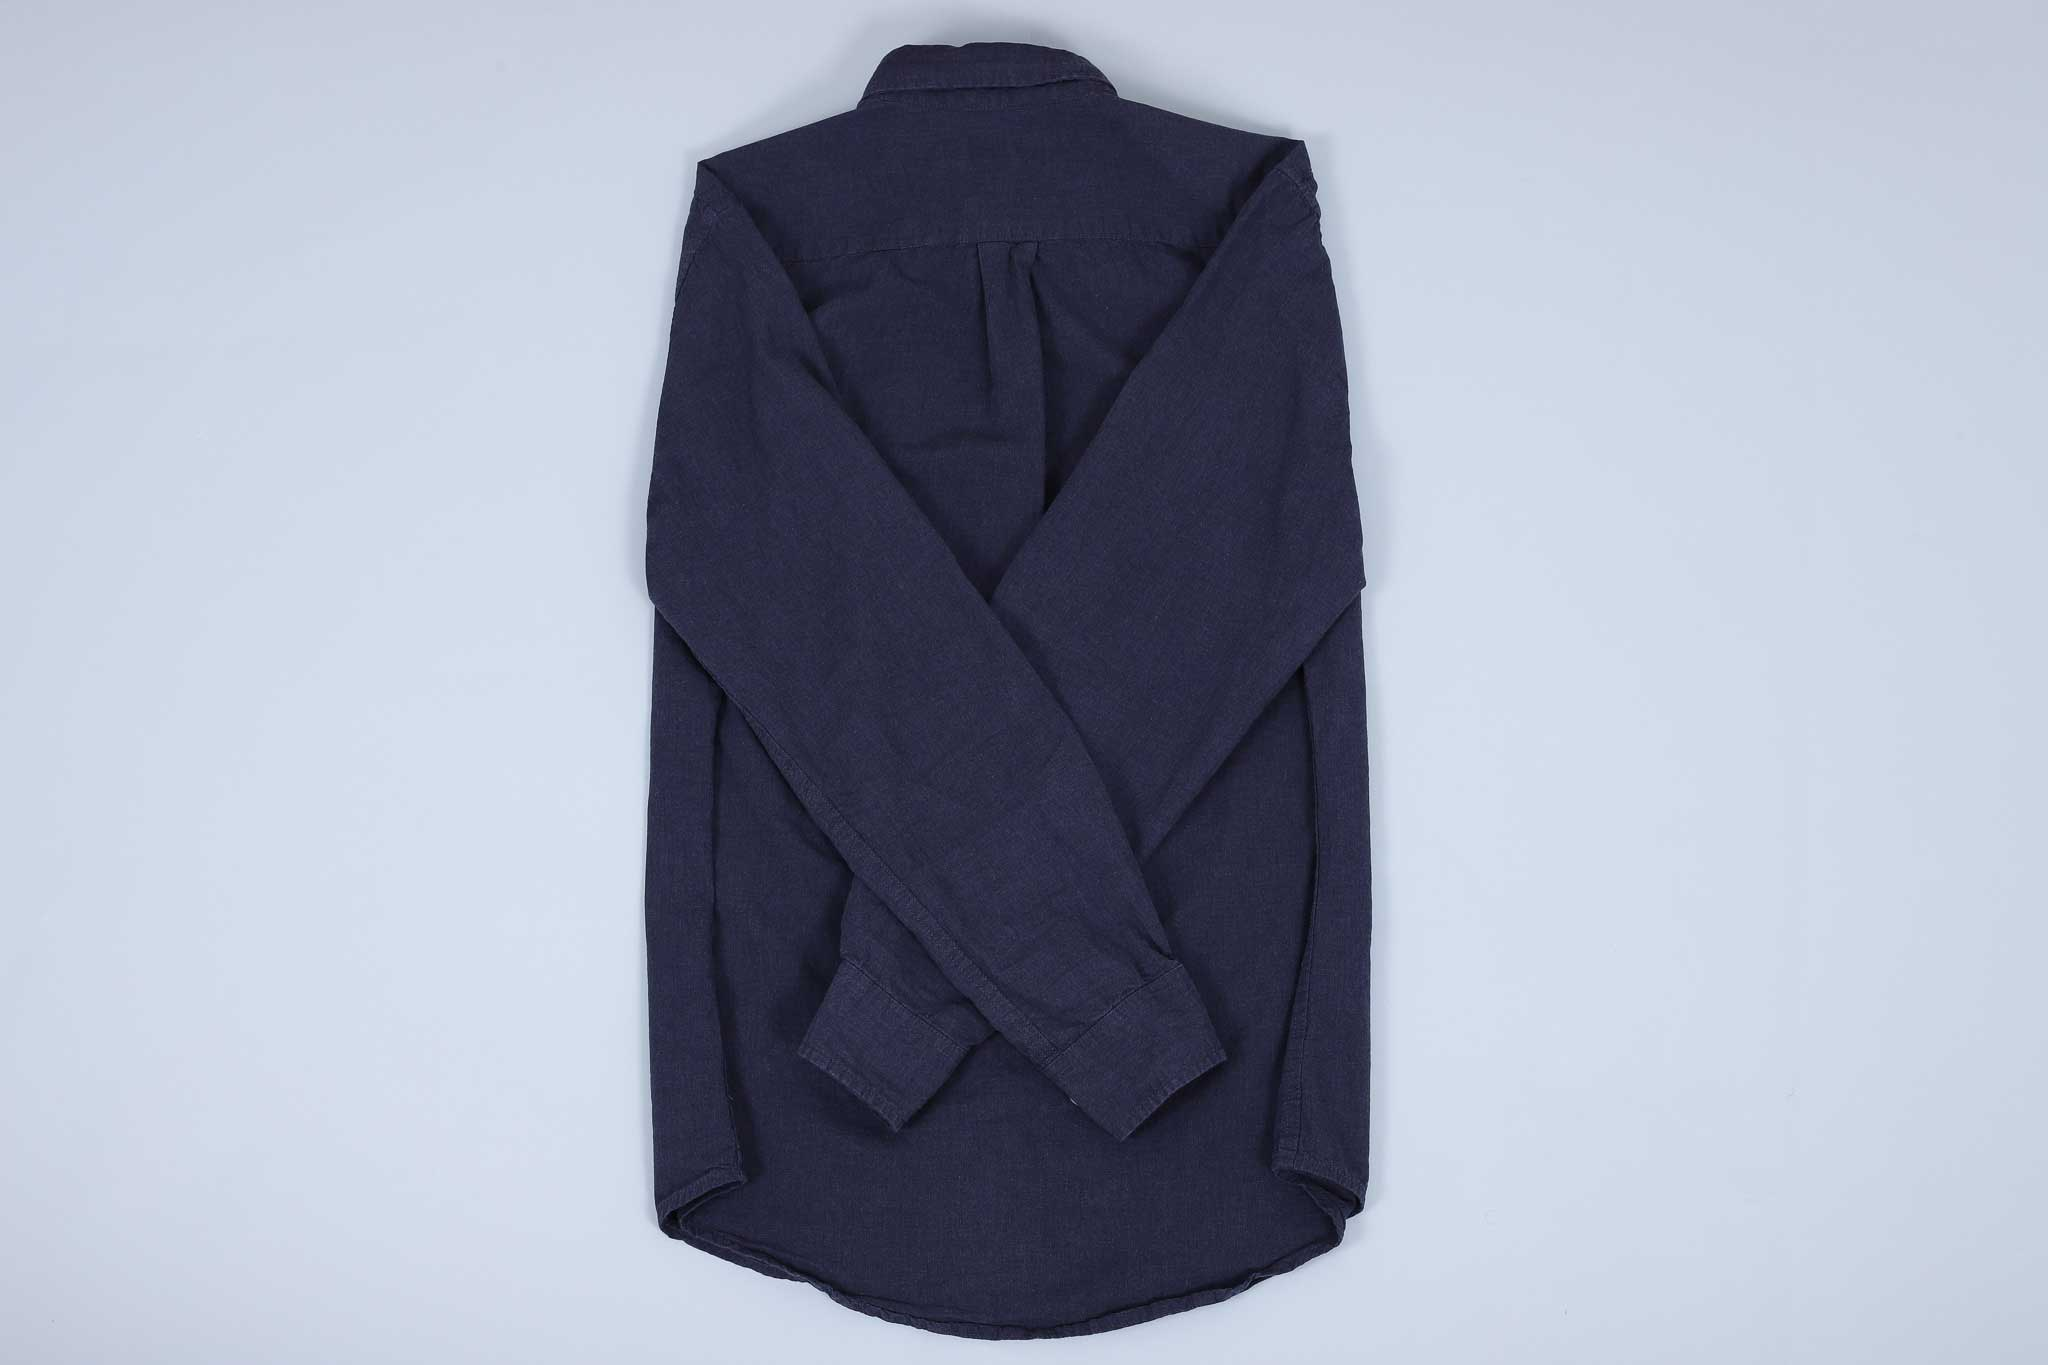 Navy buttoned up shirt with both sleeves crossed over each other on the back